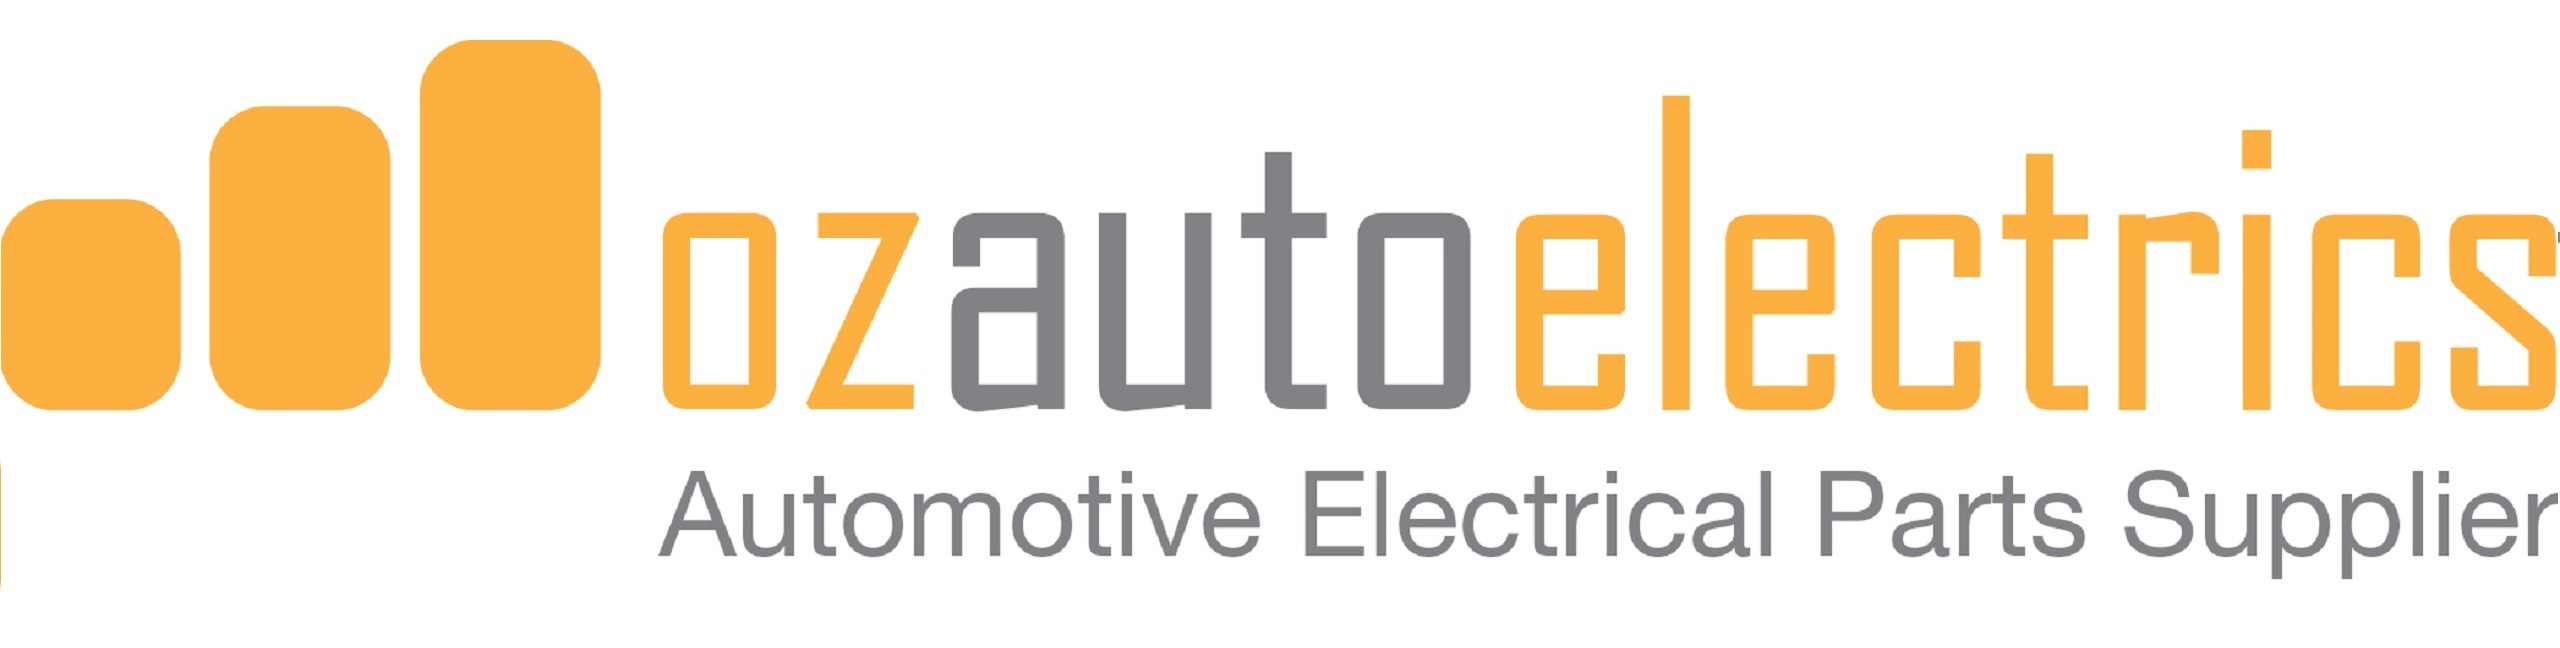 Ozautoelectrics.com